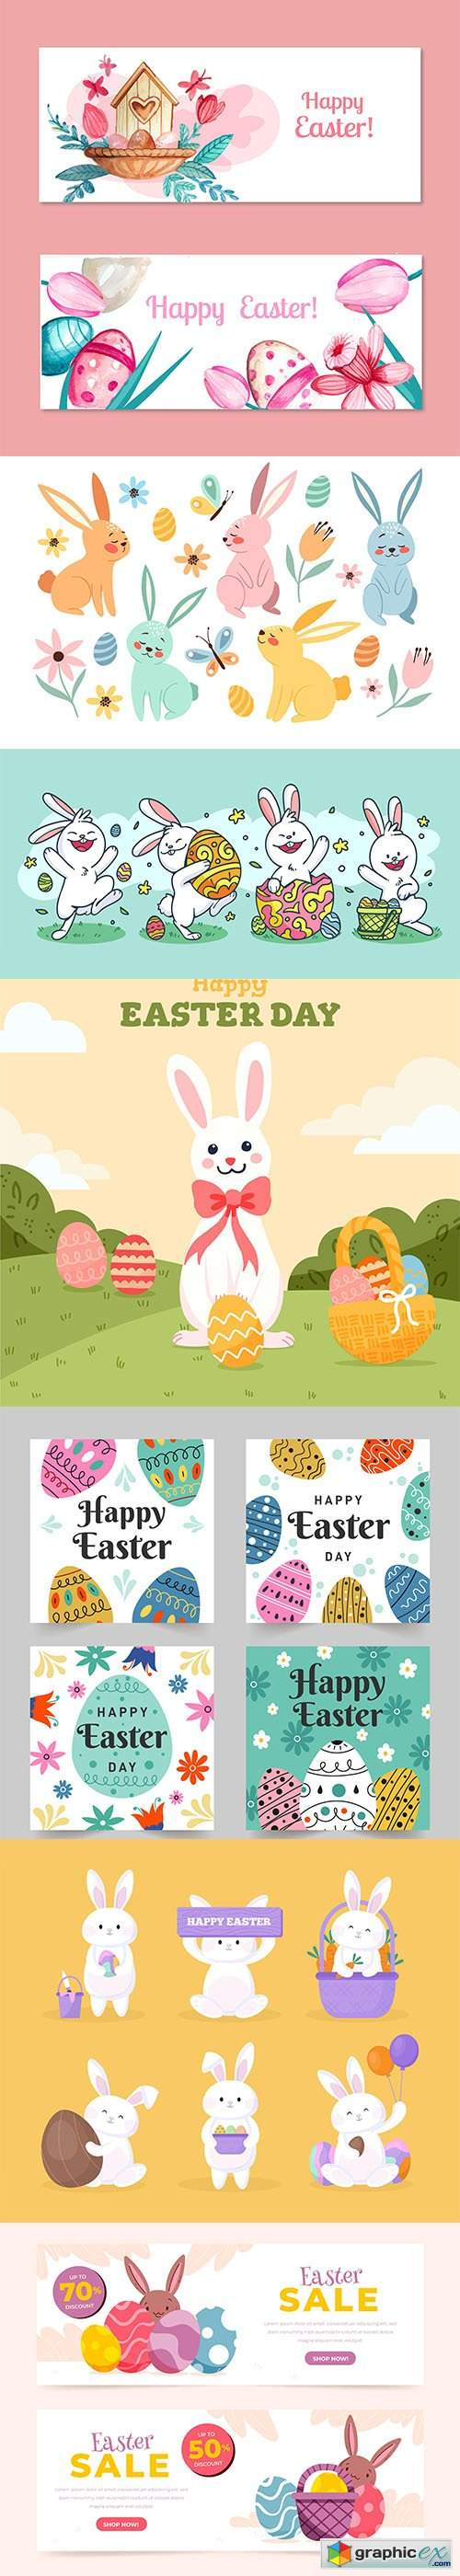 Hand-drawn cute easter illustrations and banner vol 3